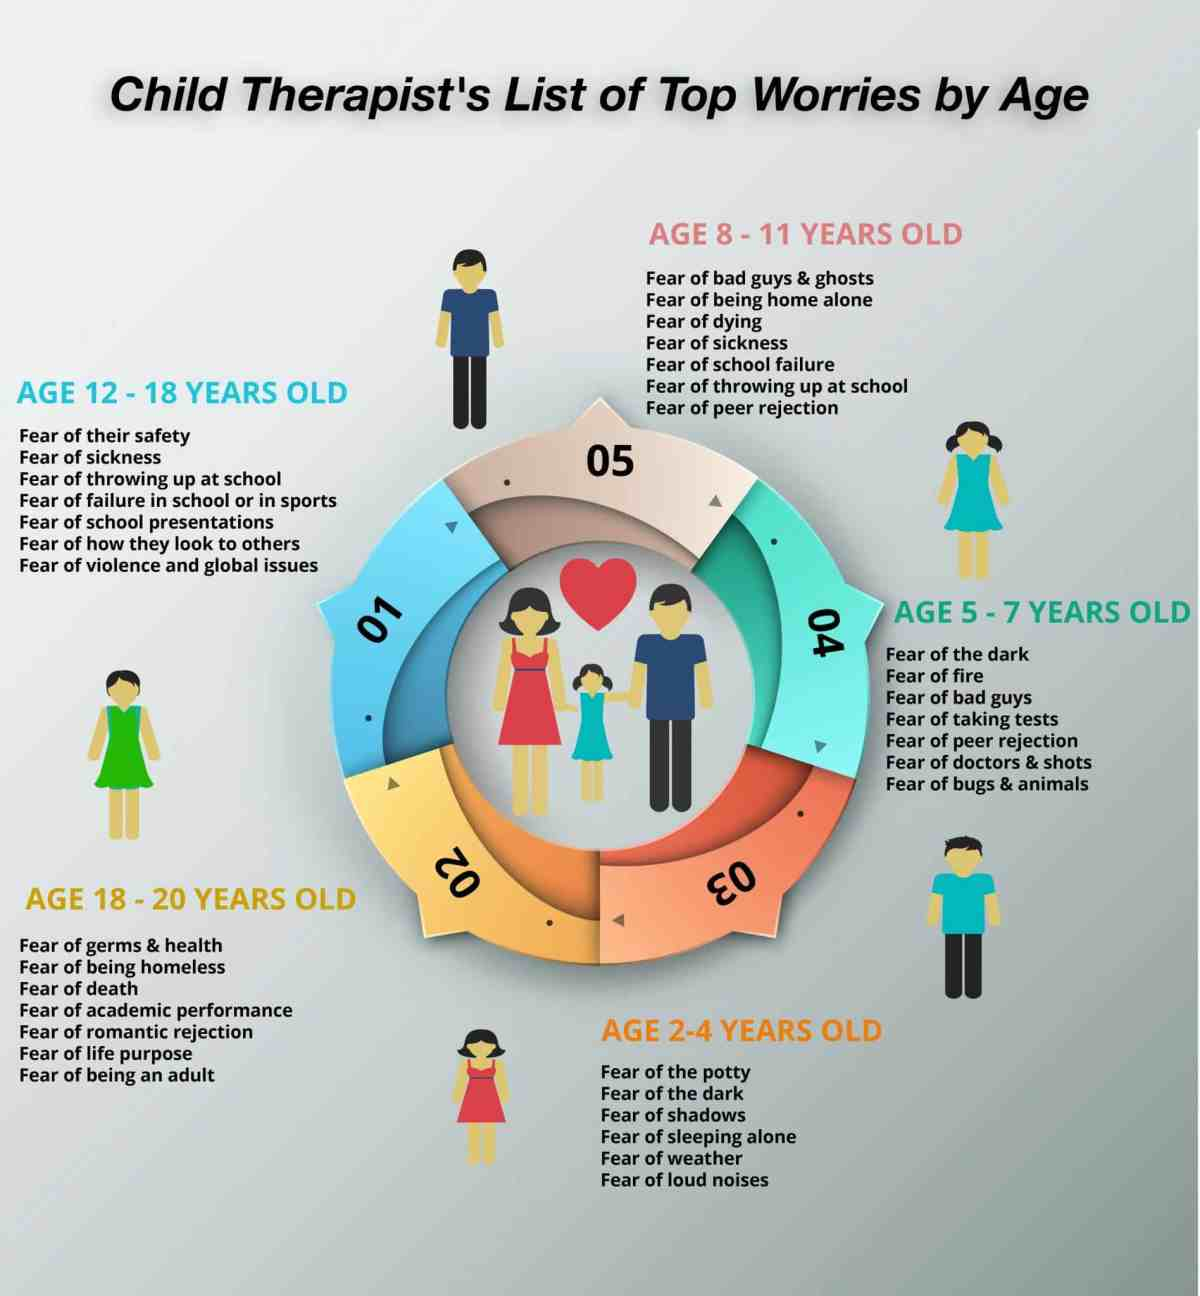 Anxieties Phobias: Child Therapist's List Of Top Childhood Fears By Age